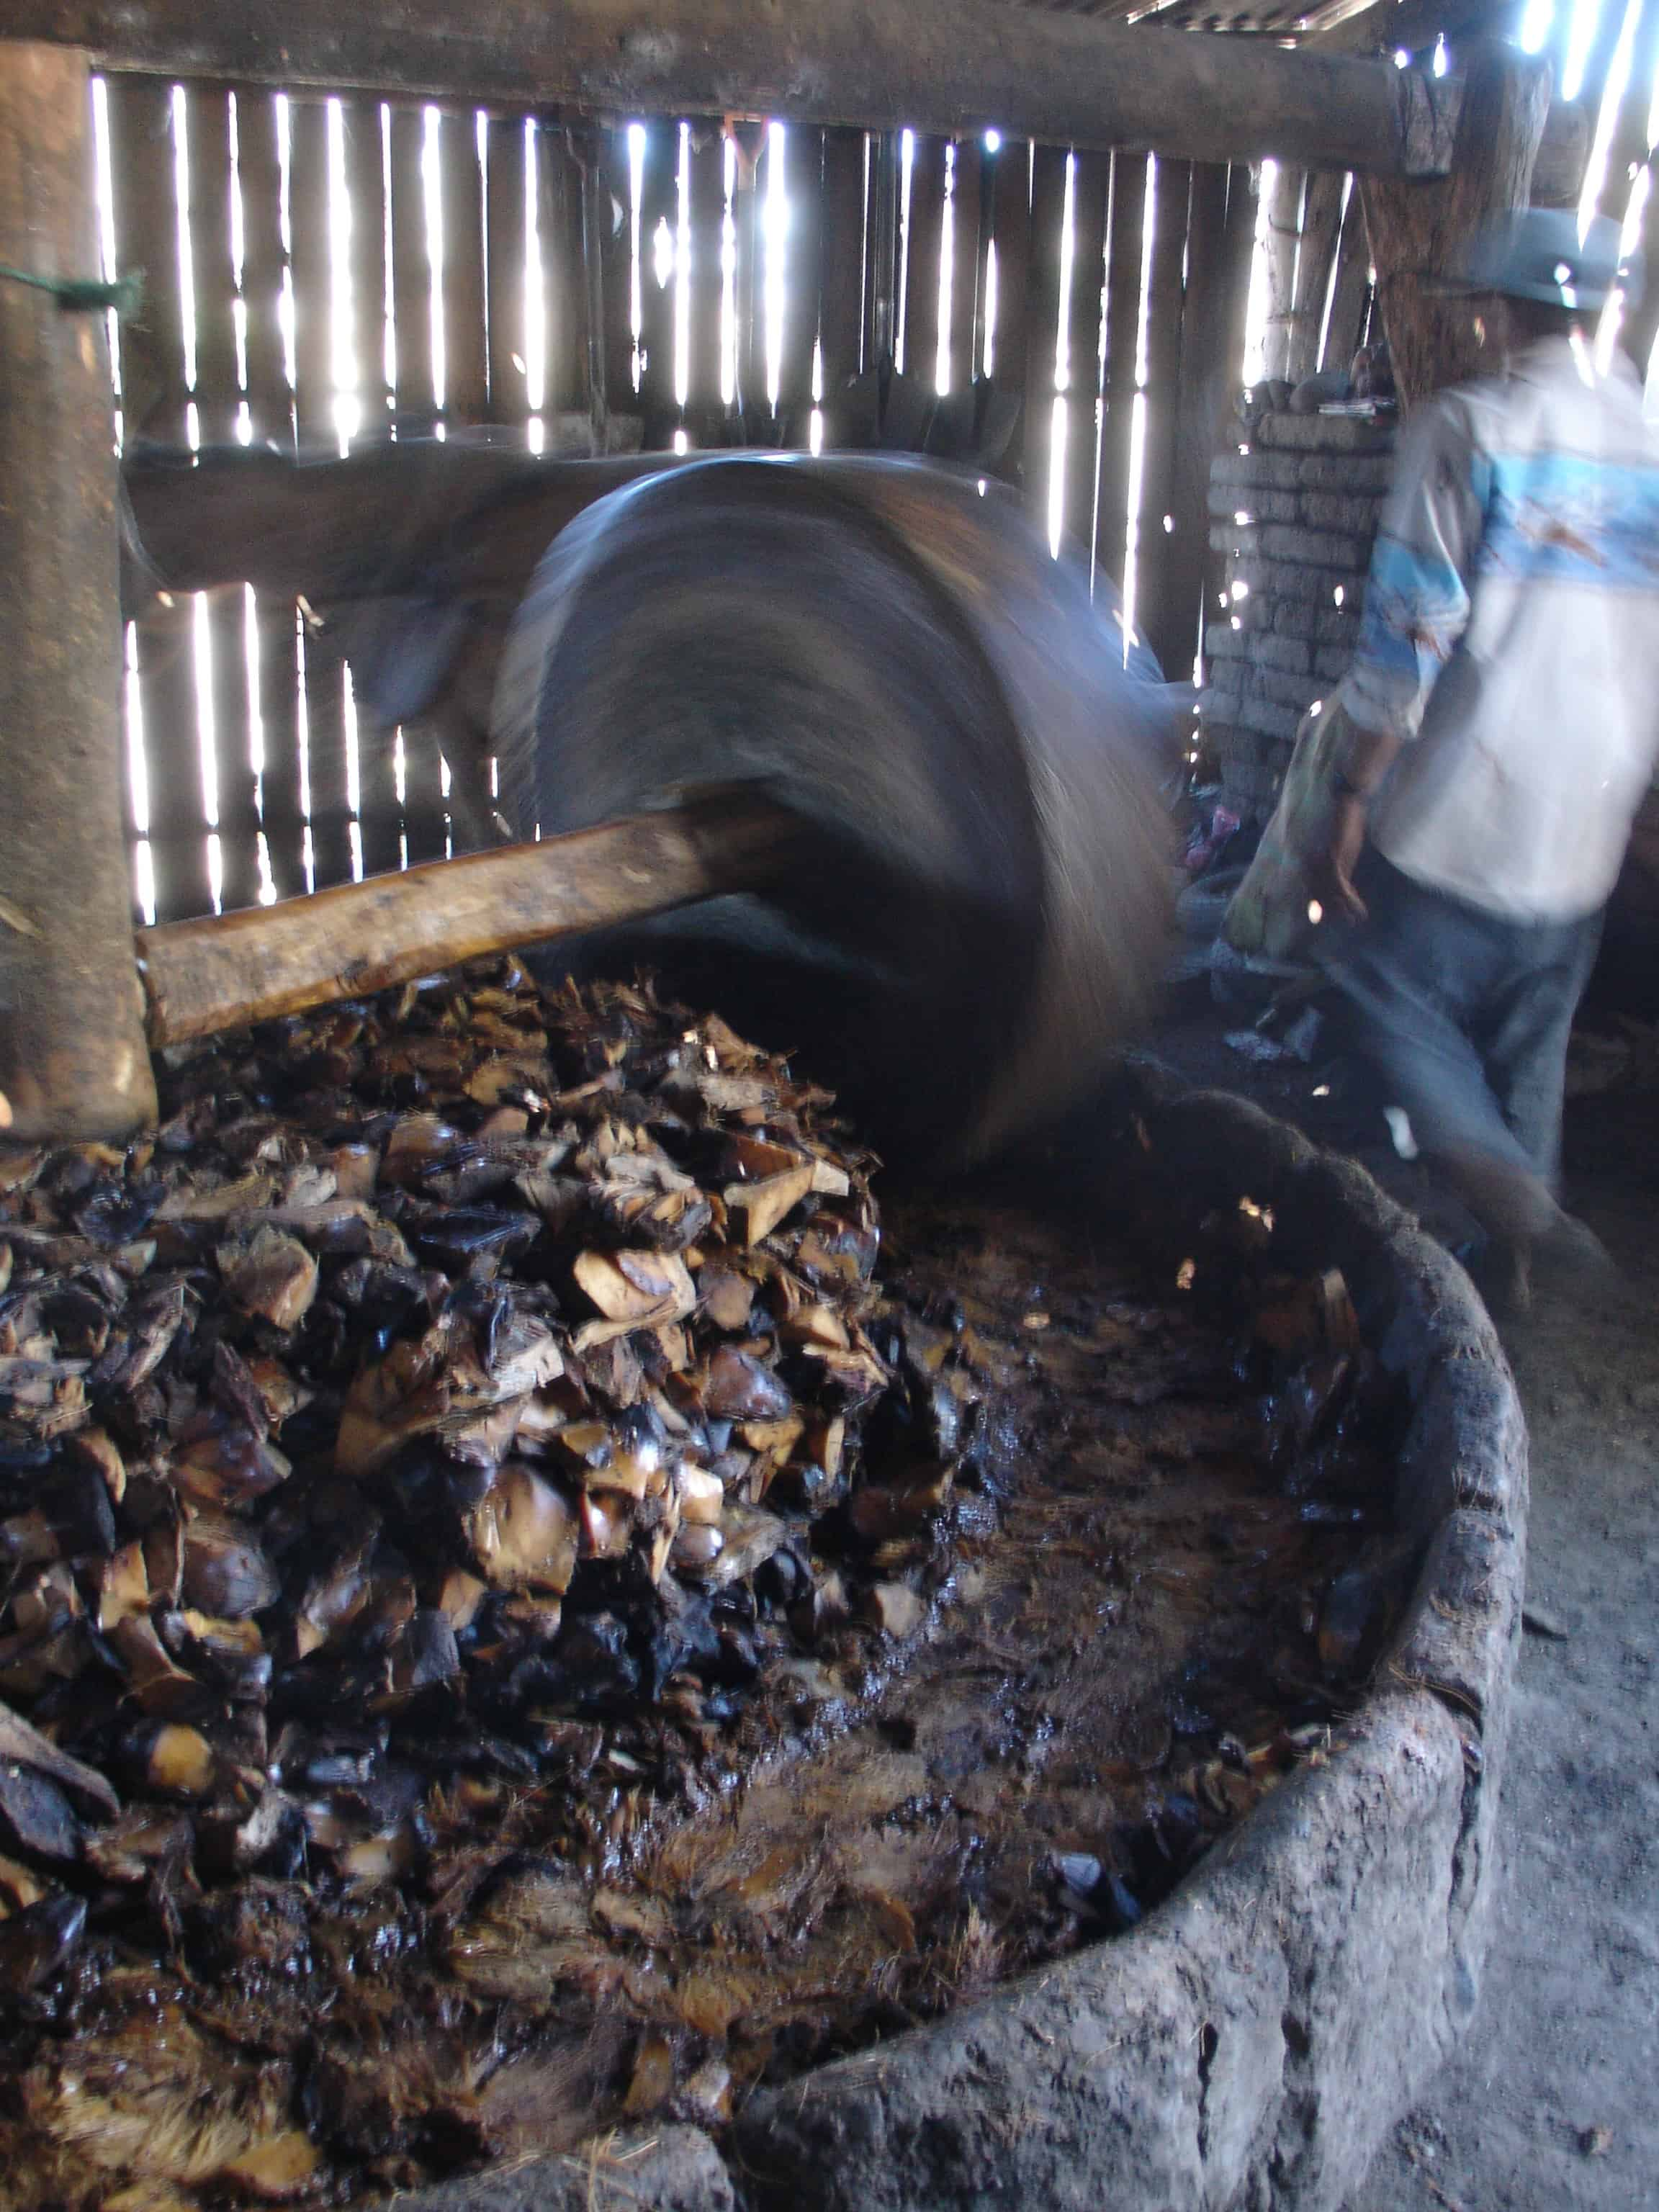 Making mash the traditional way in San Dionisio